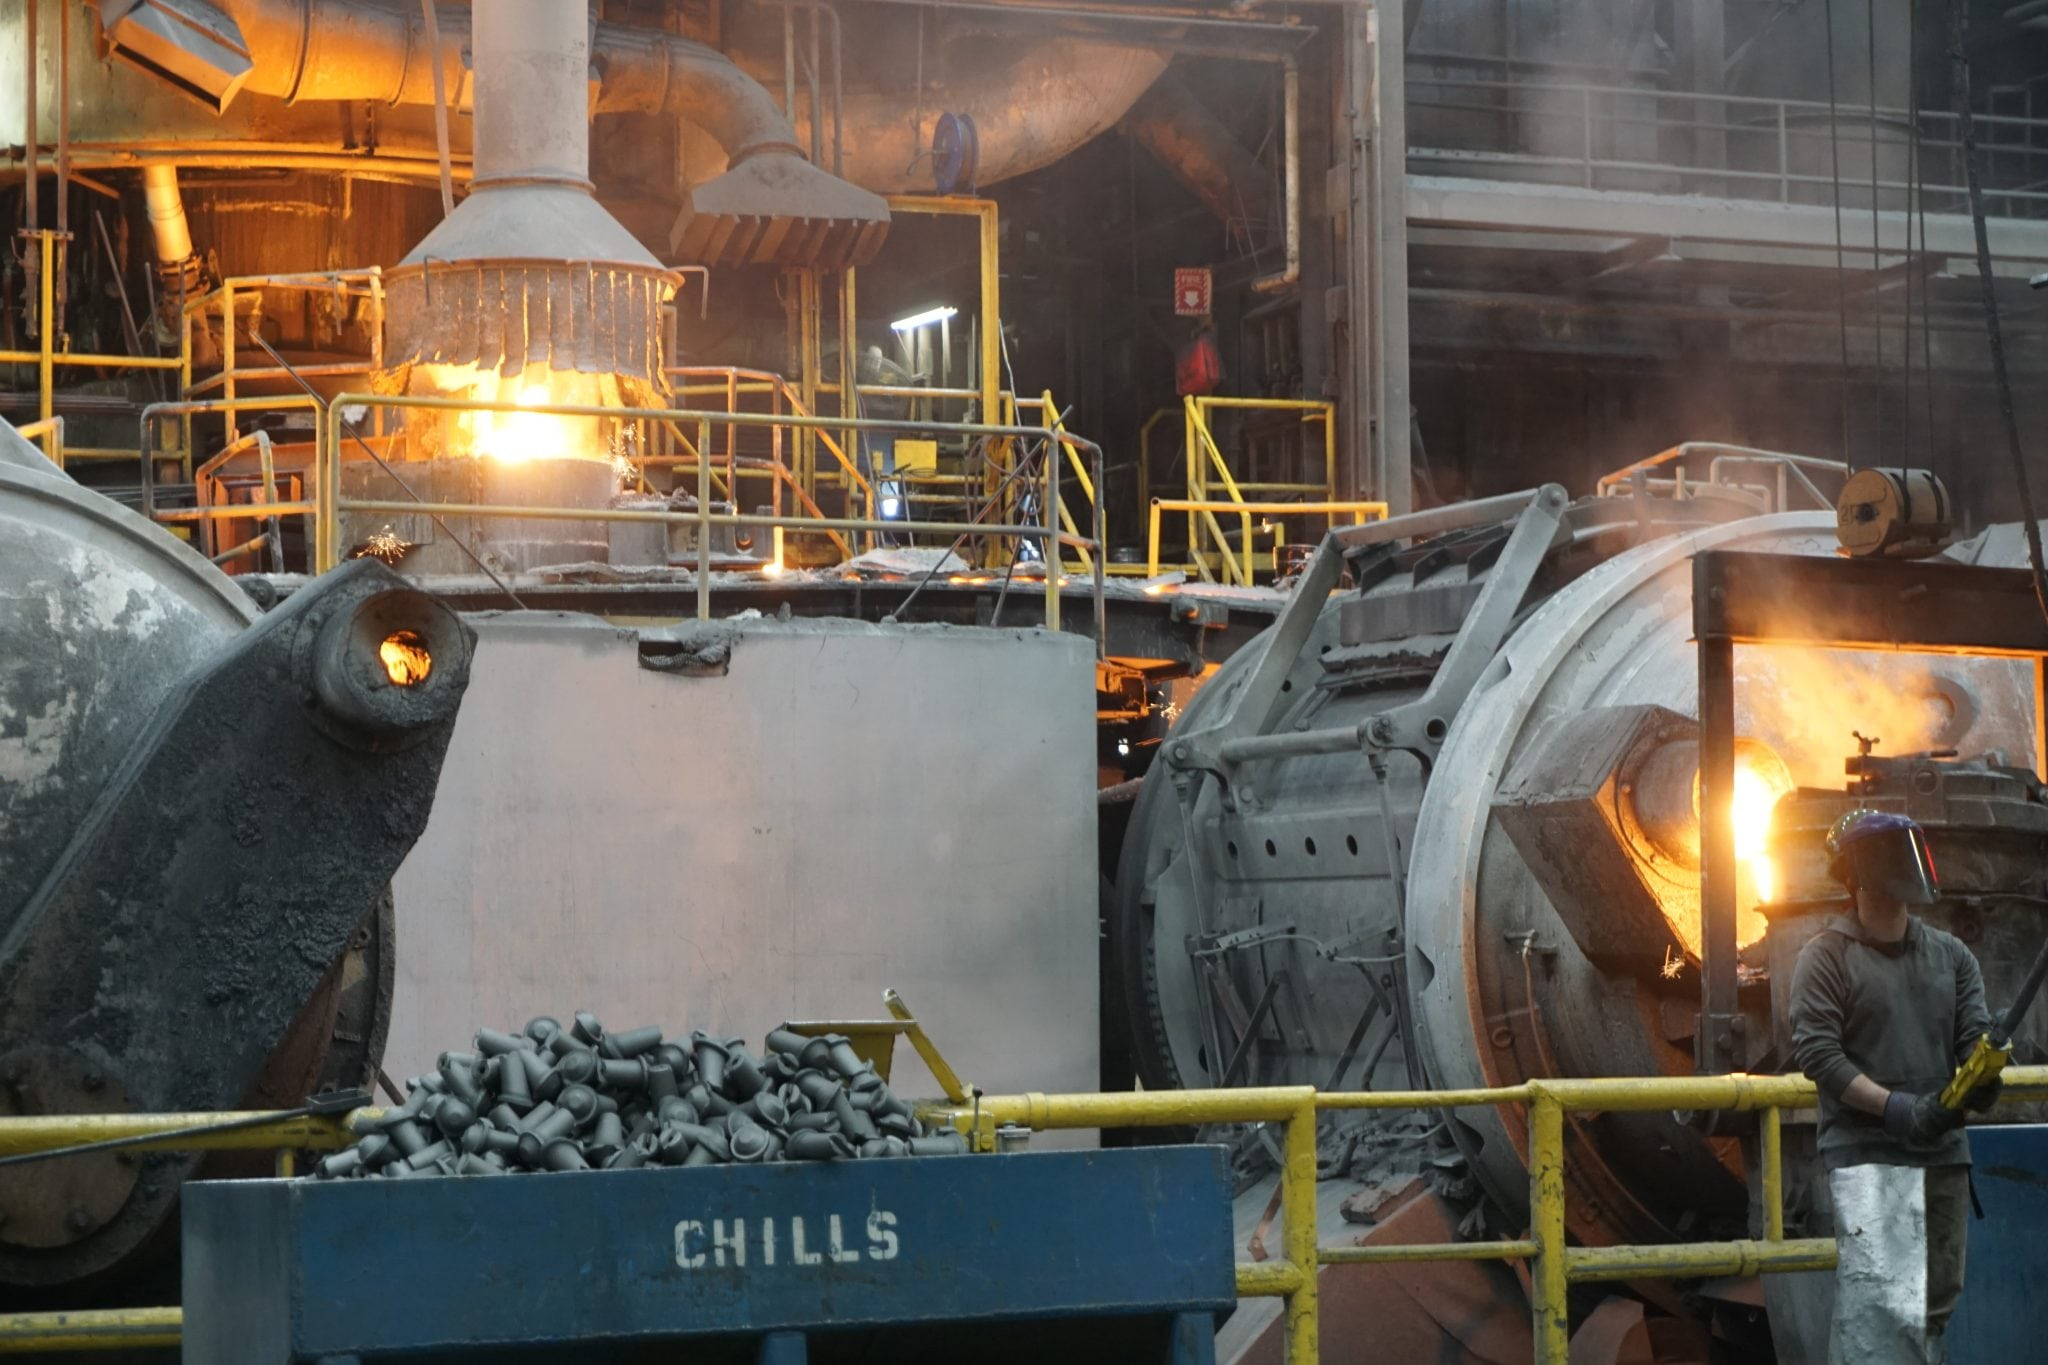 Cadillac casting cupola furnace, chills and holding tank 2 with worker. innovative leader of ductile iron castings.